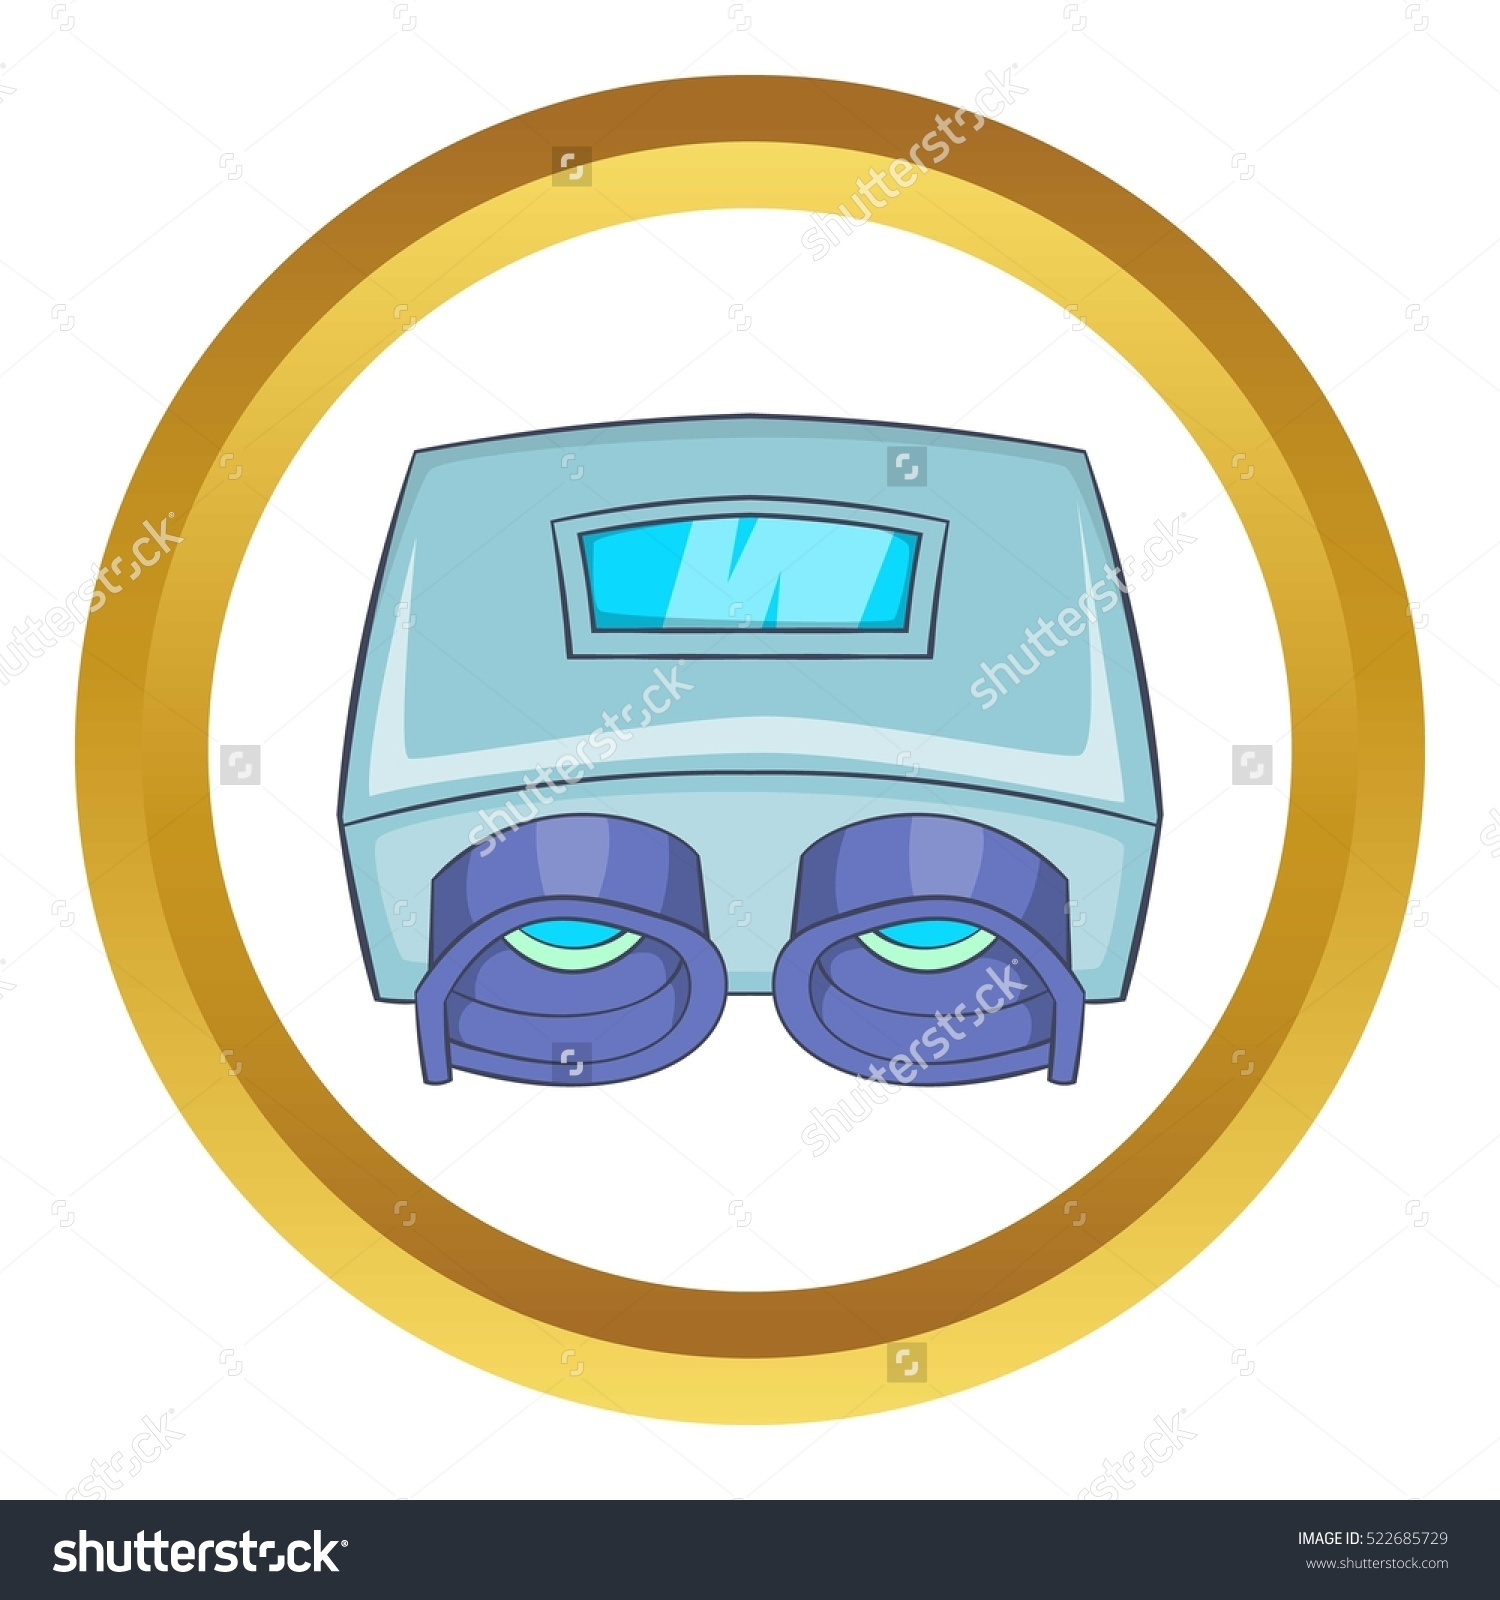 Eye Checking Machine Vector Icon Golden Stock Vector 522685729.